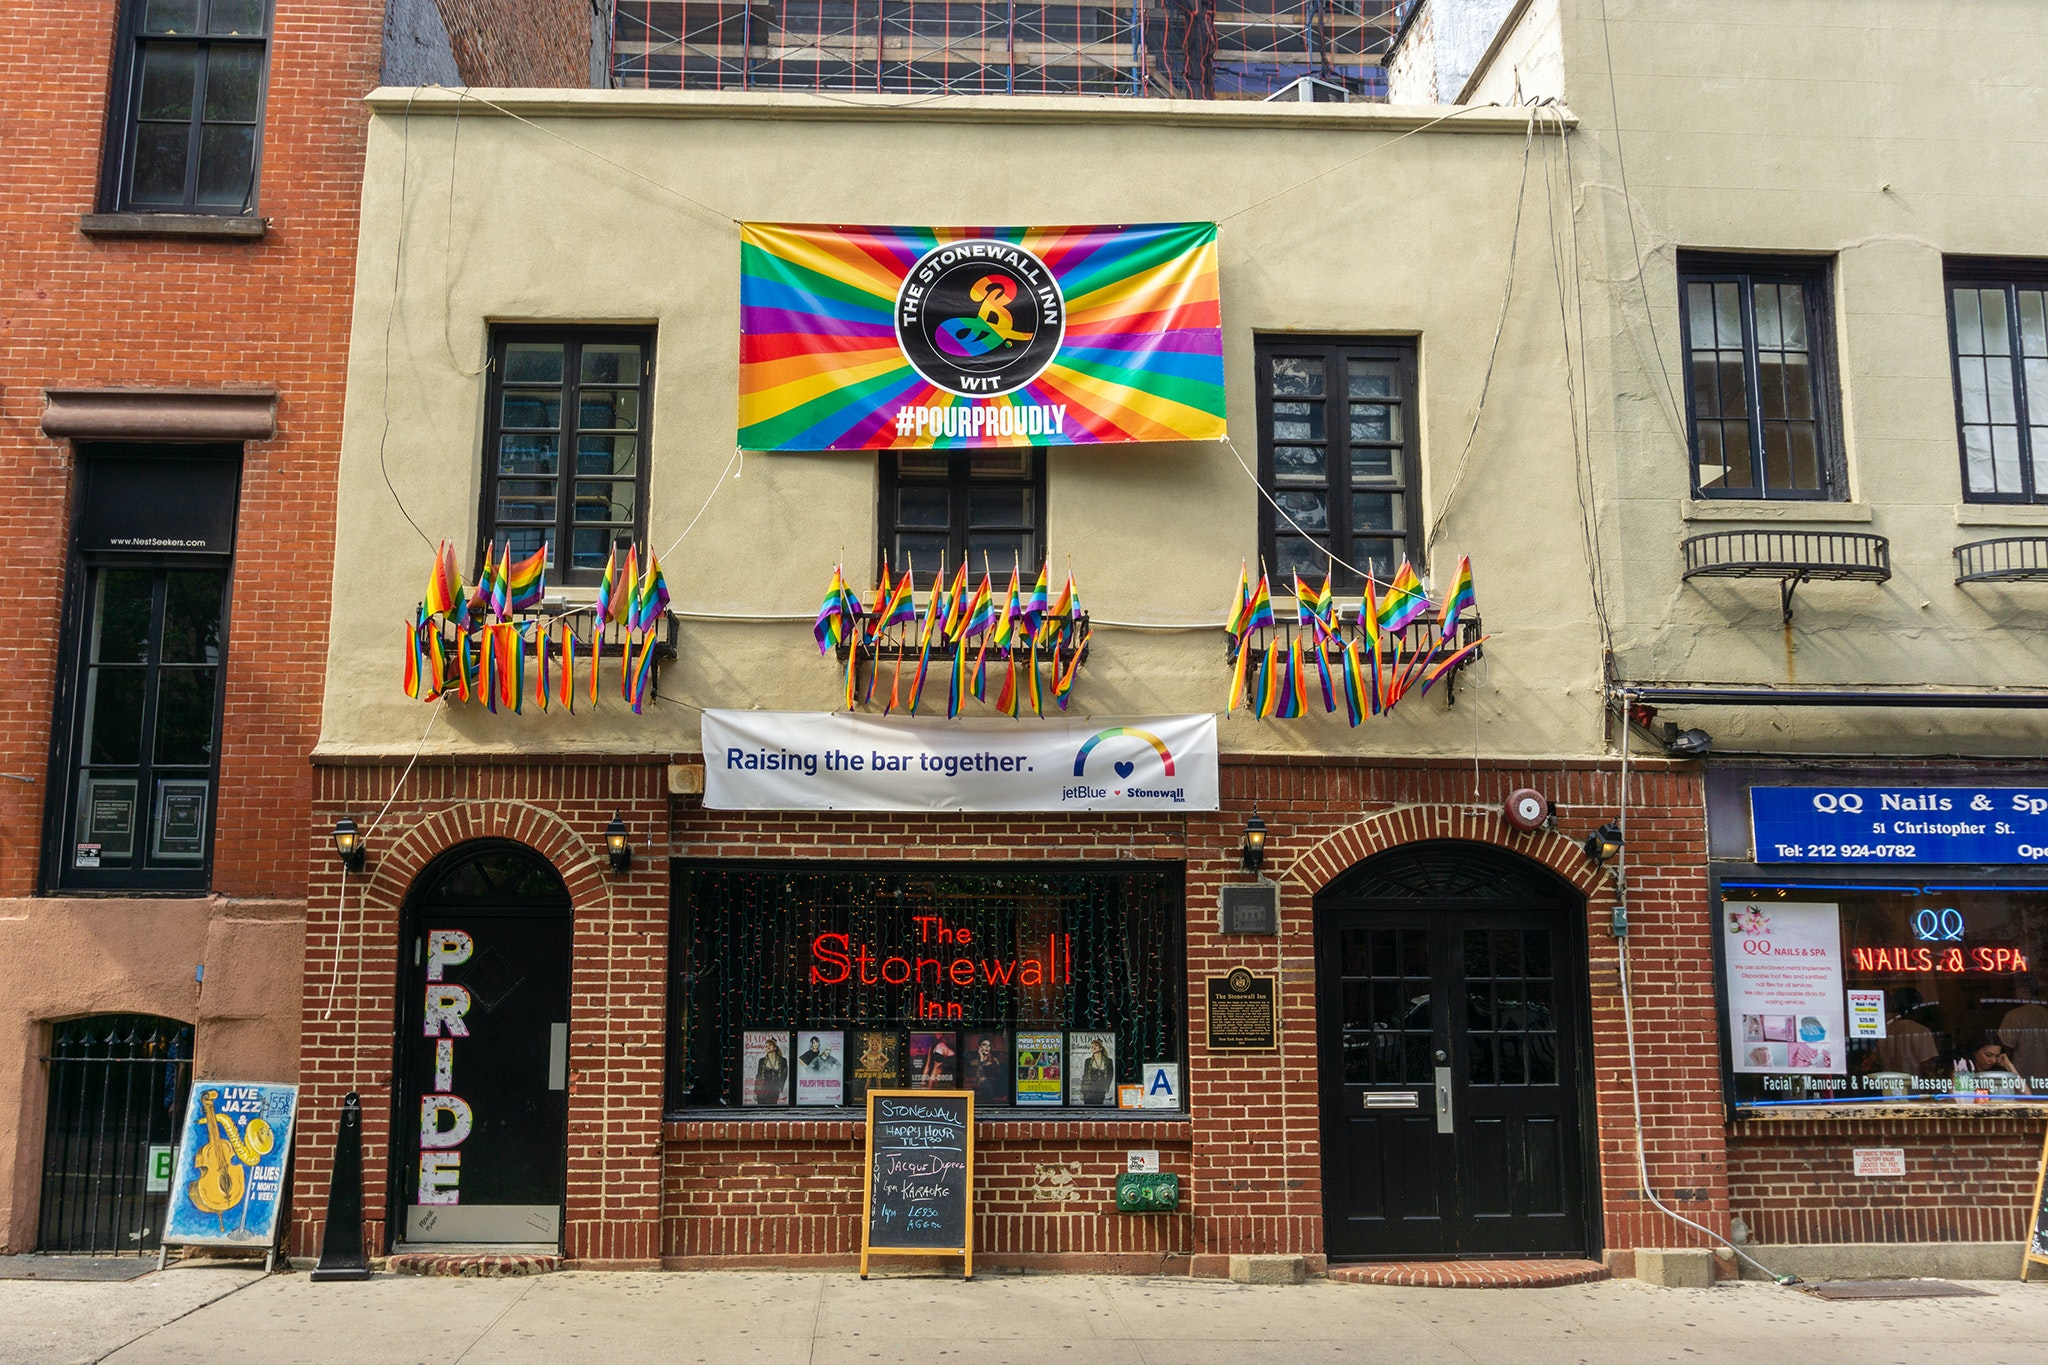 The Stonewall Inn in New York City's Greenwich Village is a milestone landmark in the quest for LGBTQ equal rights.